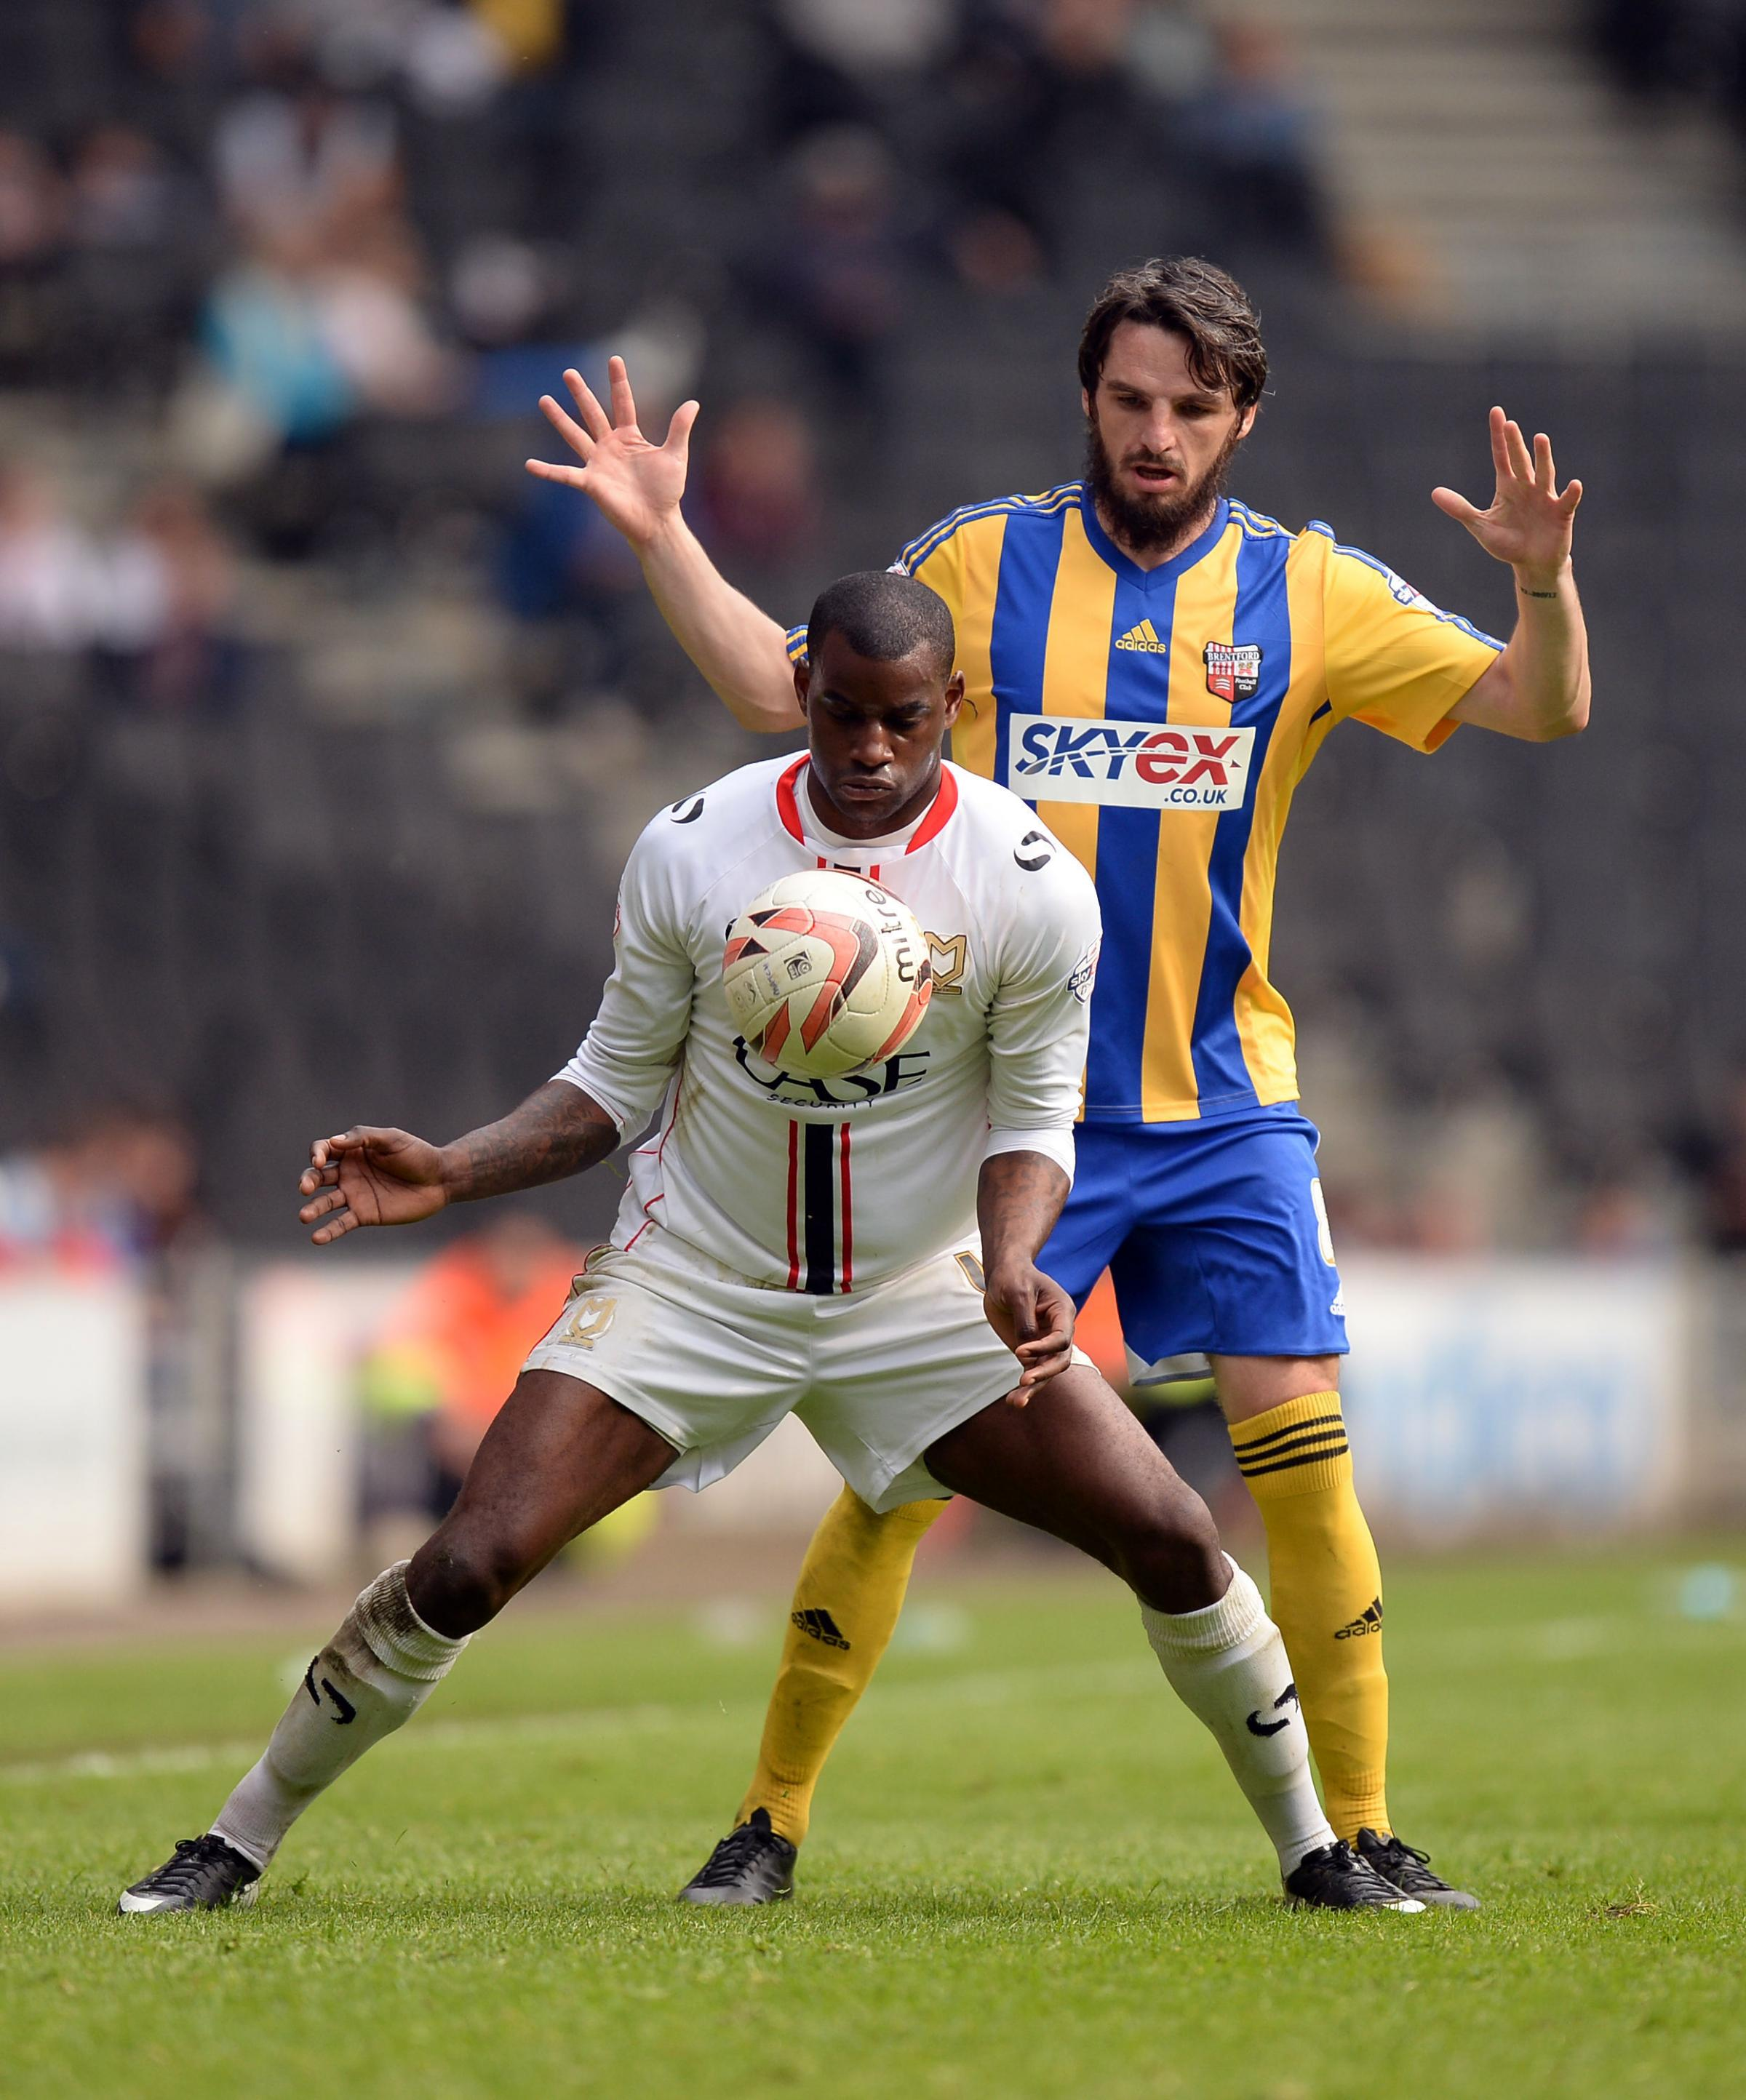 Izale McLeod scored ten goals in 40 games for MK Dons last season